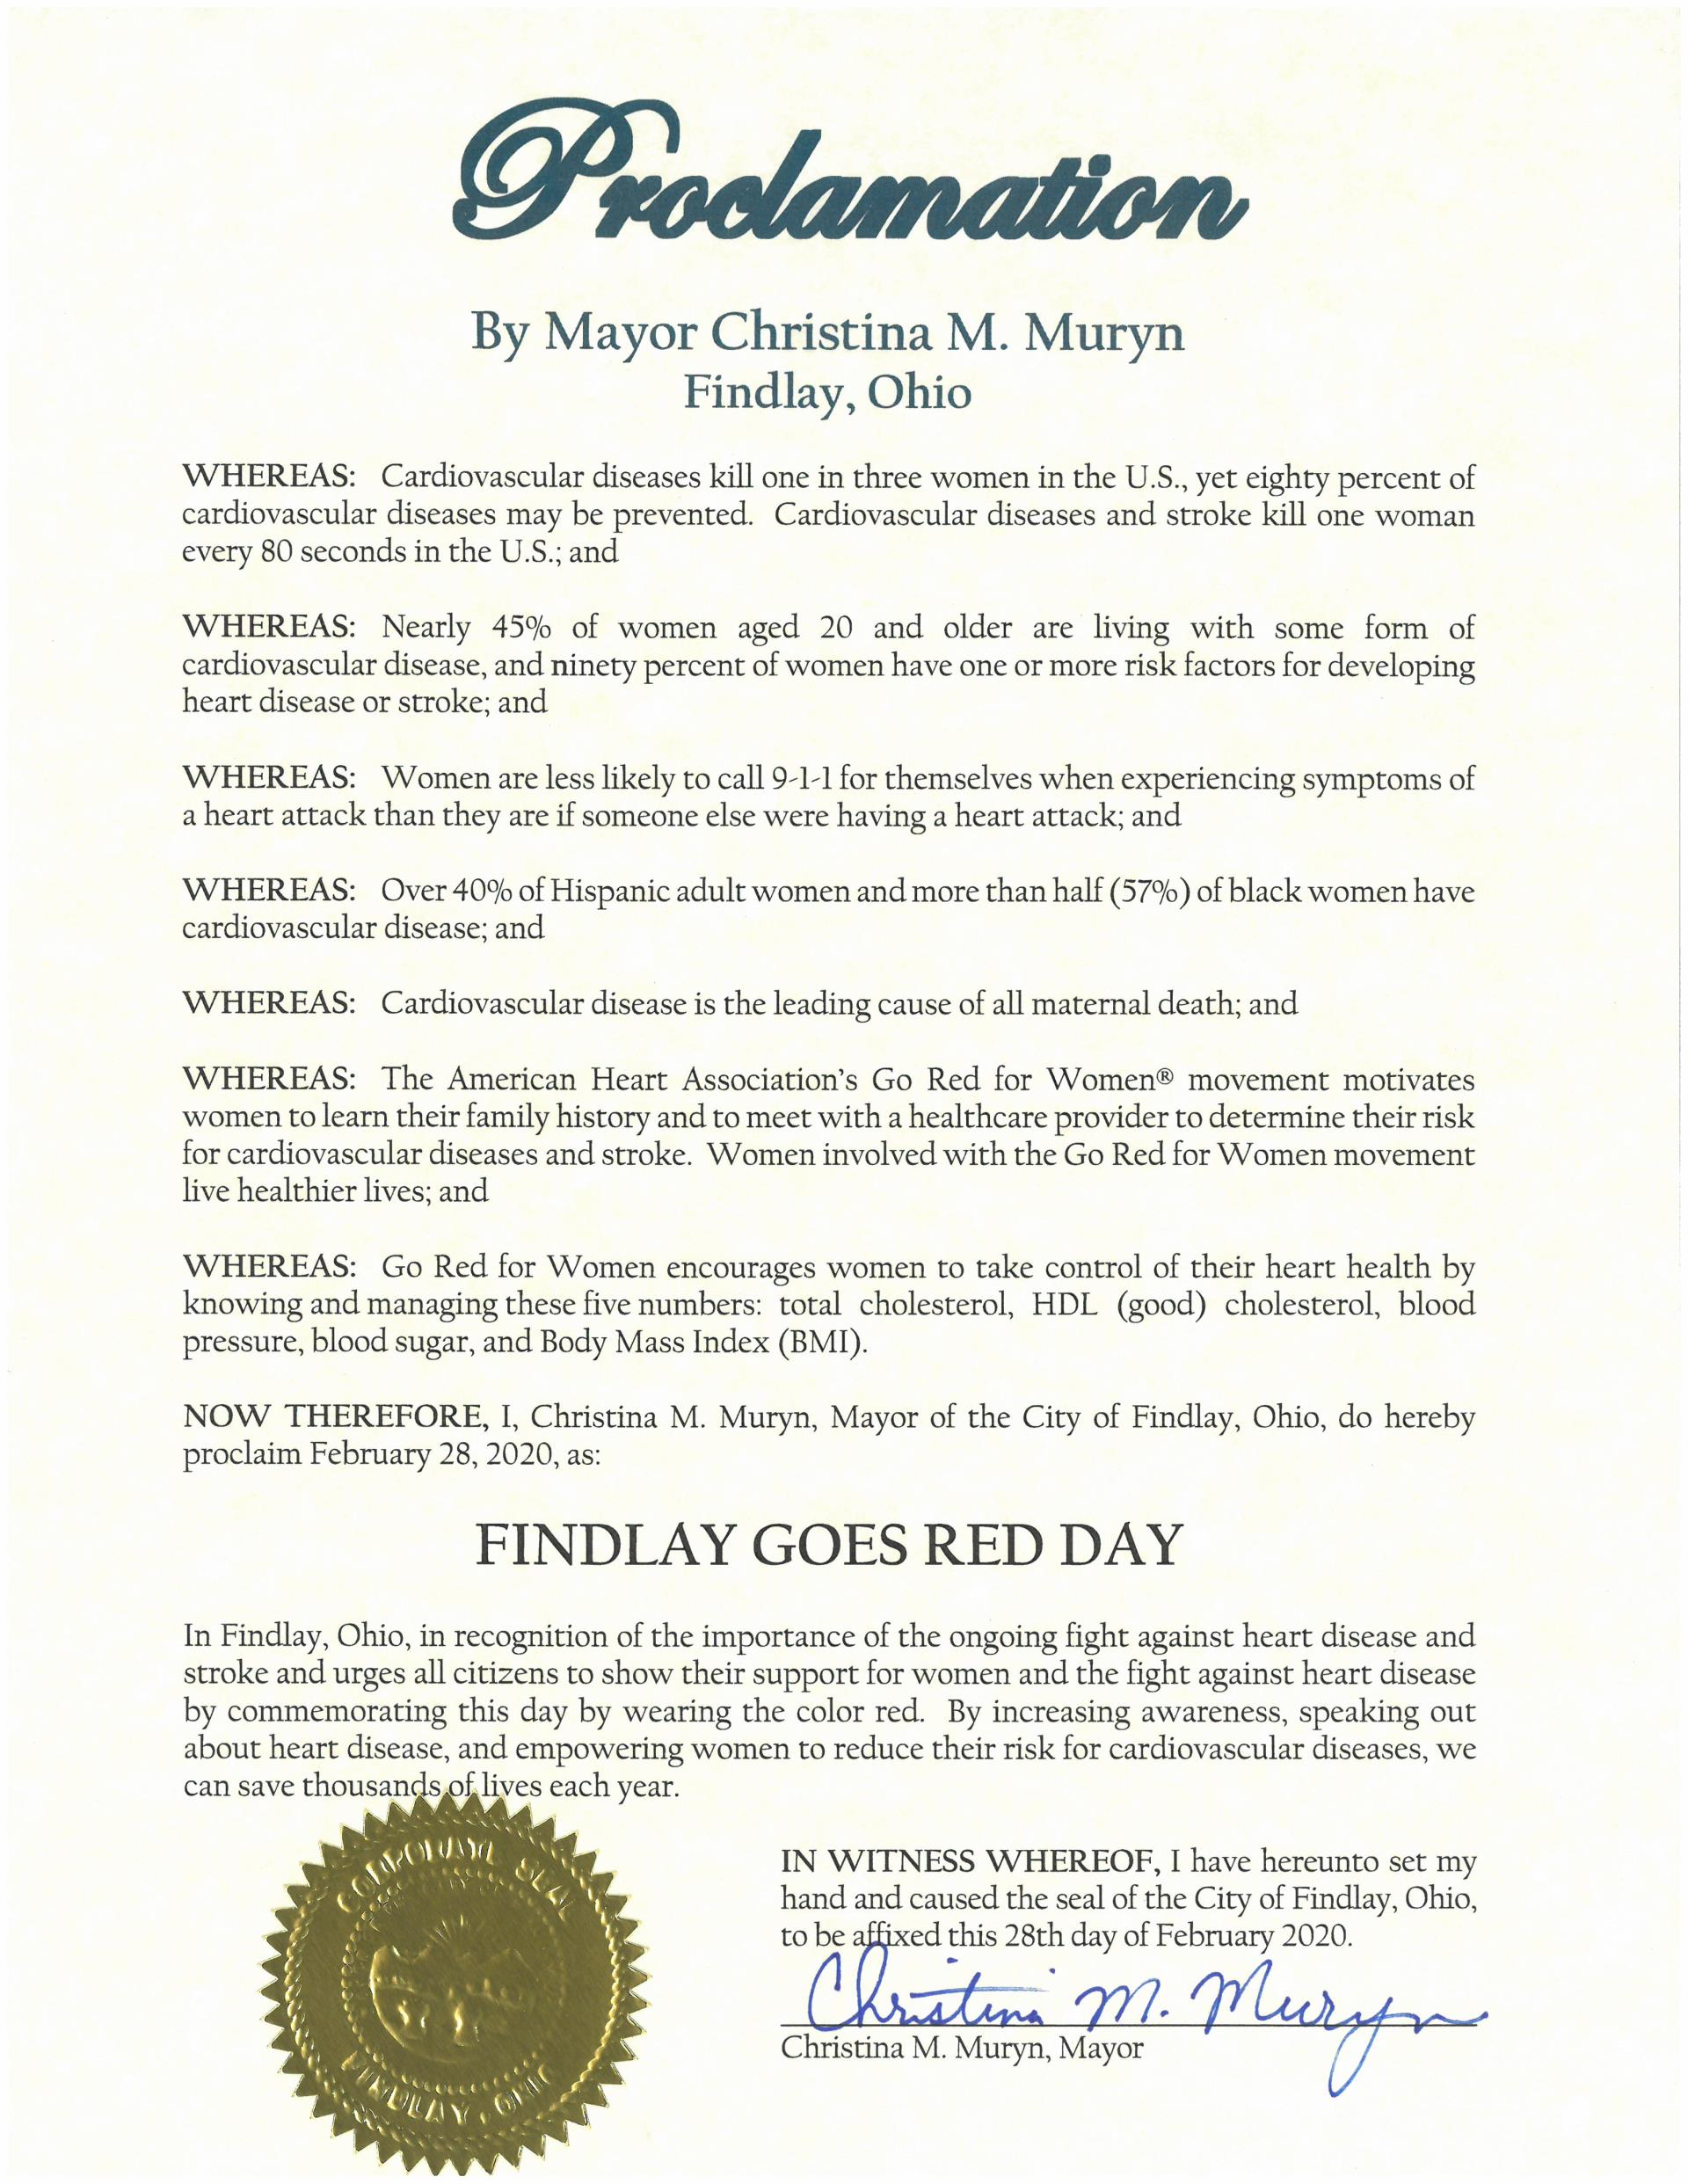 2020.02.28.Findlay Goes Red Day Proclamation